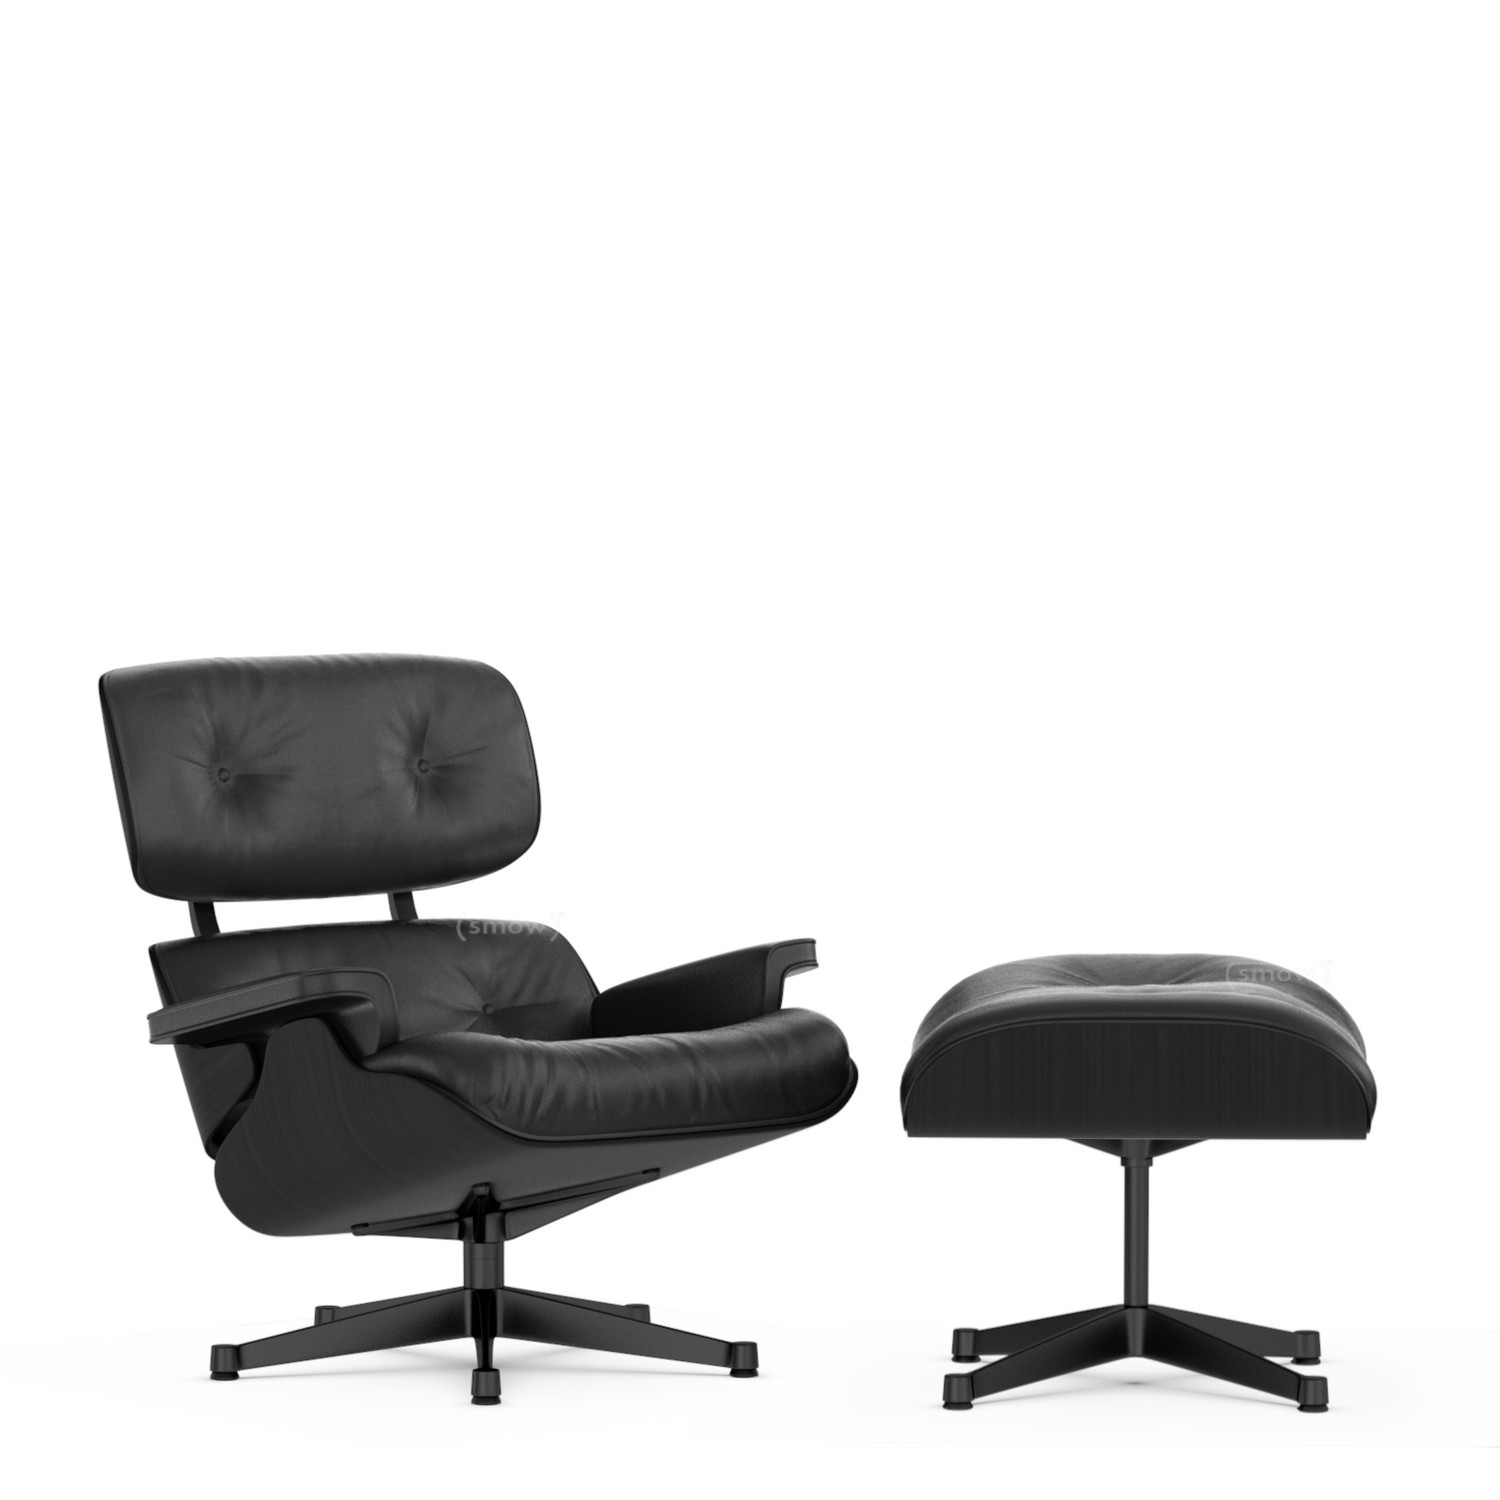 Awe Inspiring Vitra Lounge Chair Ottoman Beauty Versions Ash Black Asphalt 84 Cm Original Height 1956 Black Powdercoated Creativecarmelina Interior Chair Design Creativecarmelinacom